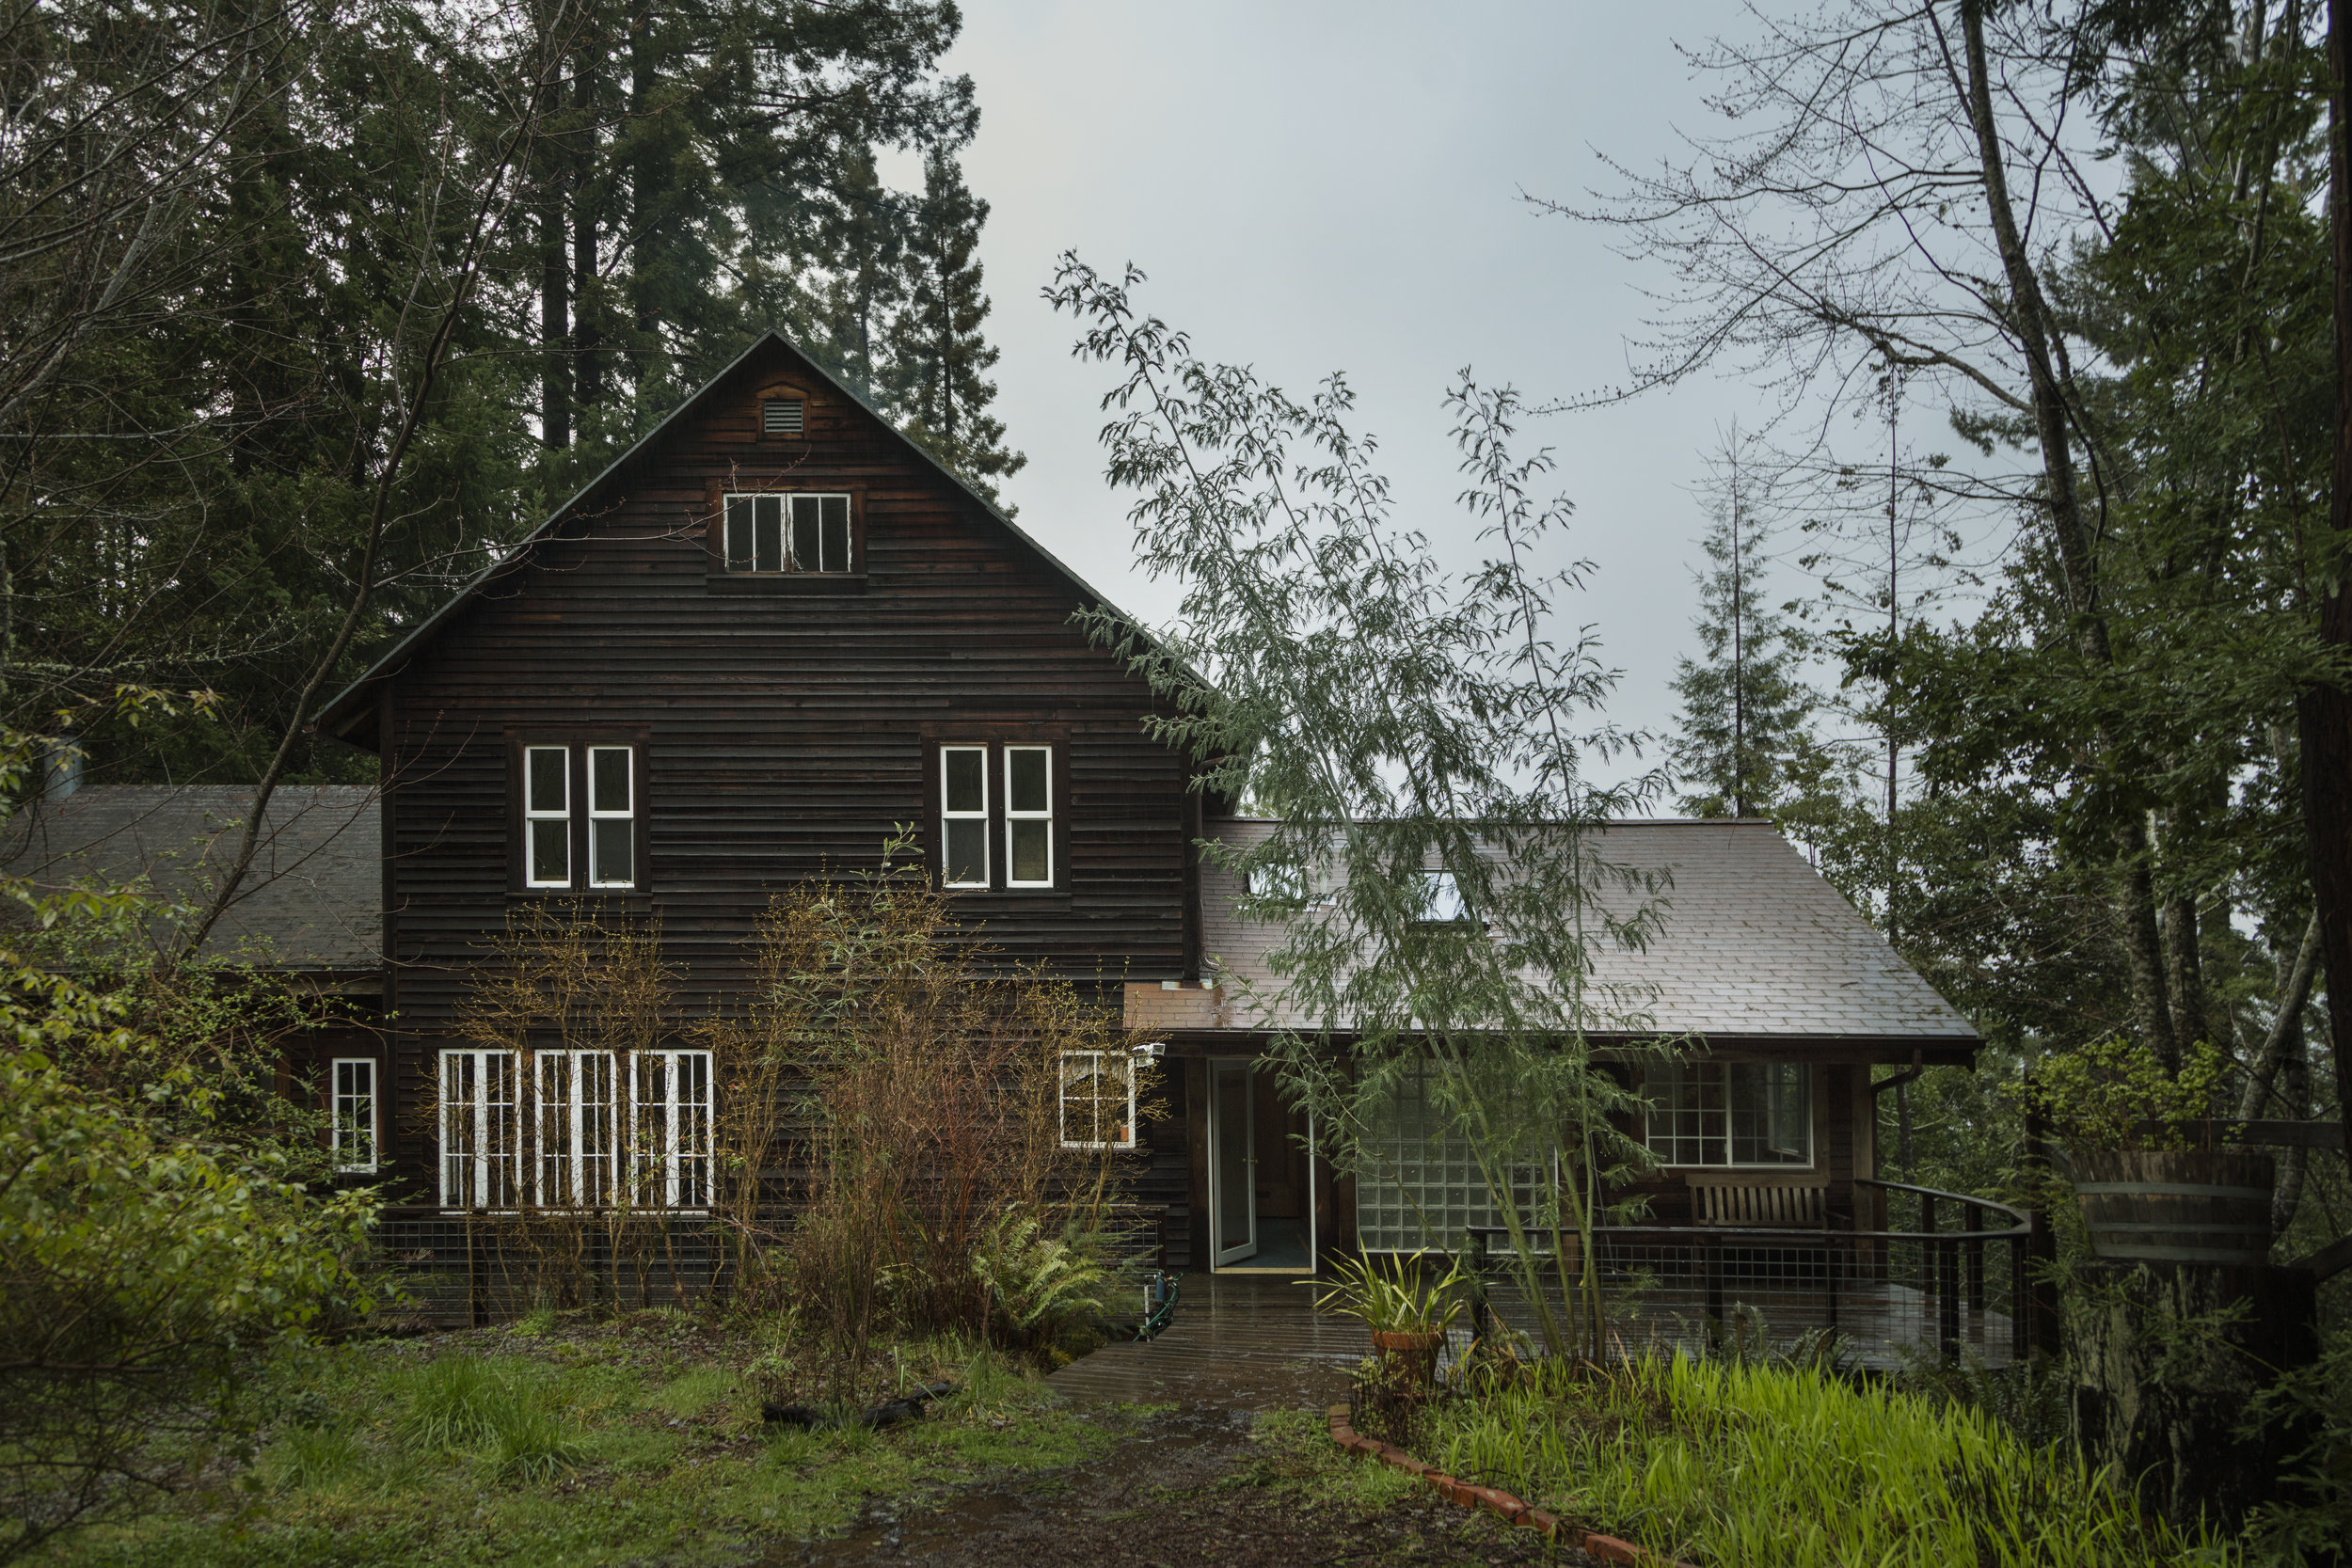 exterior of family home in the hills above Philo, CA